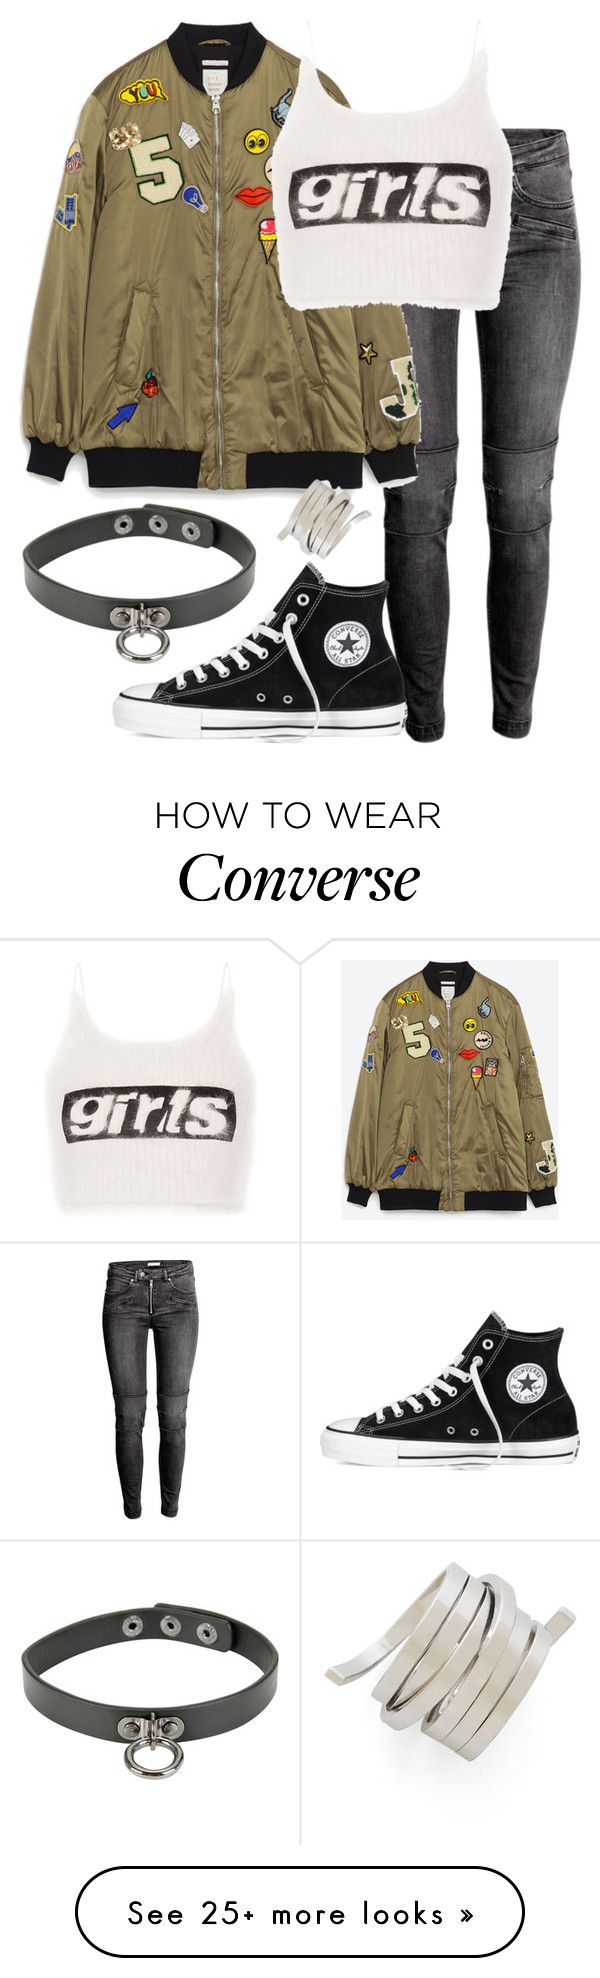 """black converse"" by bekahtee on Polyvore featuring Zara, Alexander Wang, Converse and BCBGMAXAZRIA"